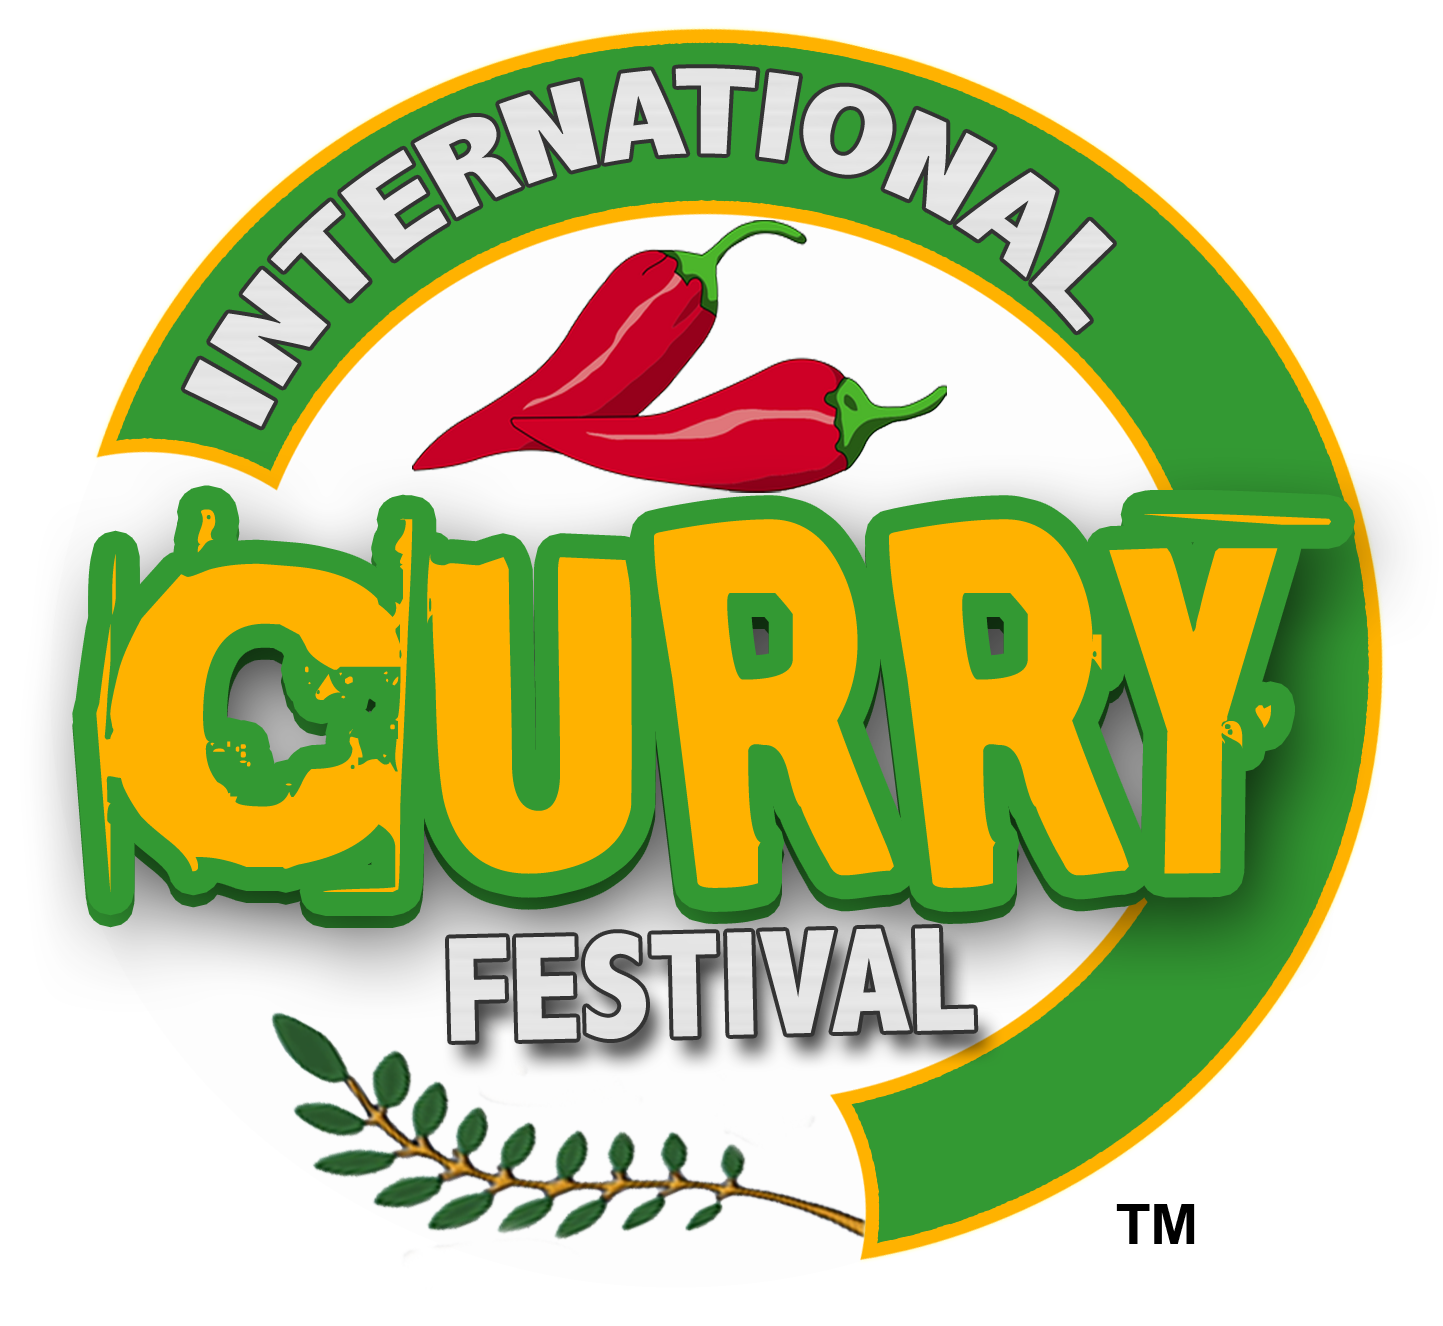 International Curry Festival